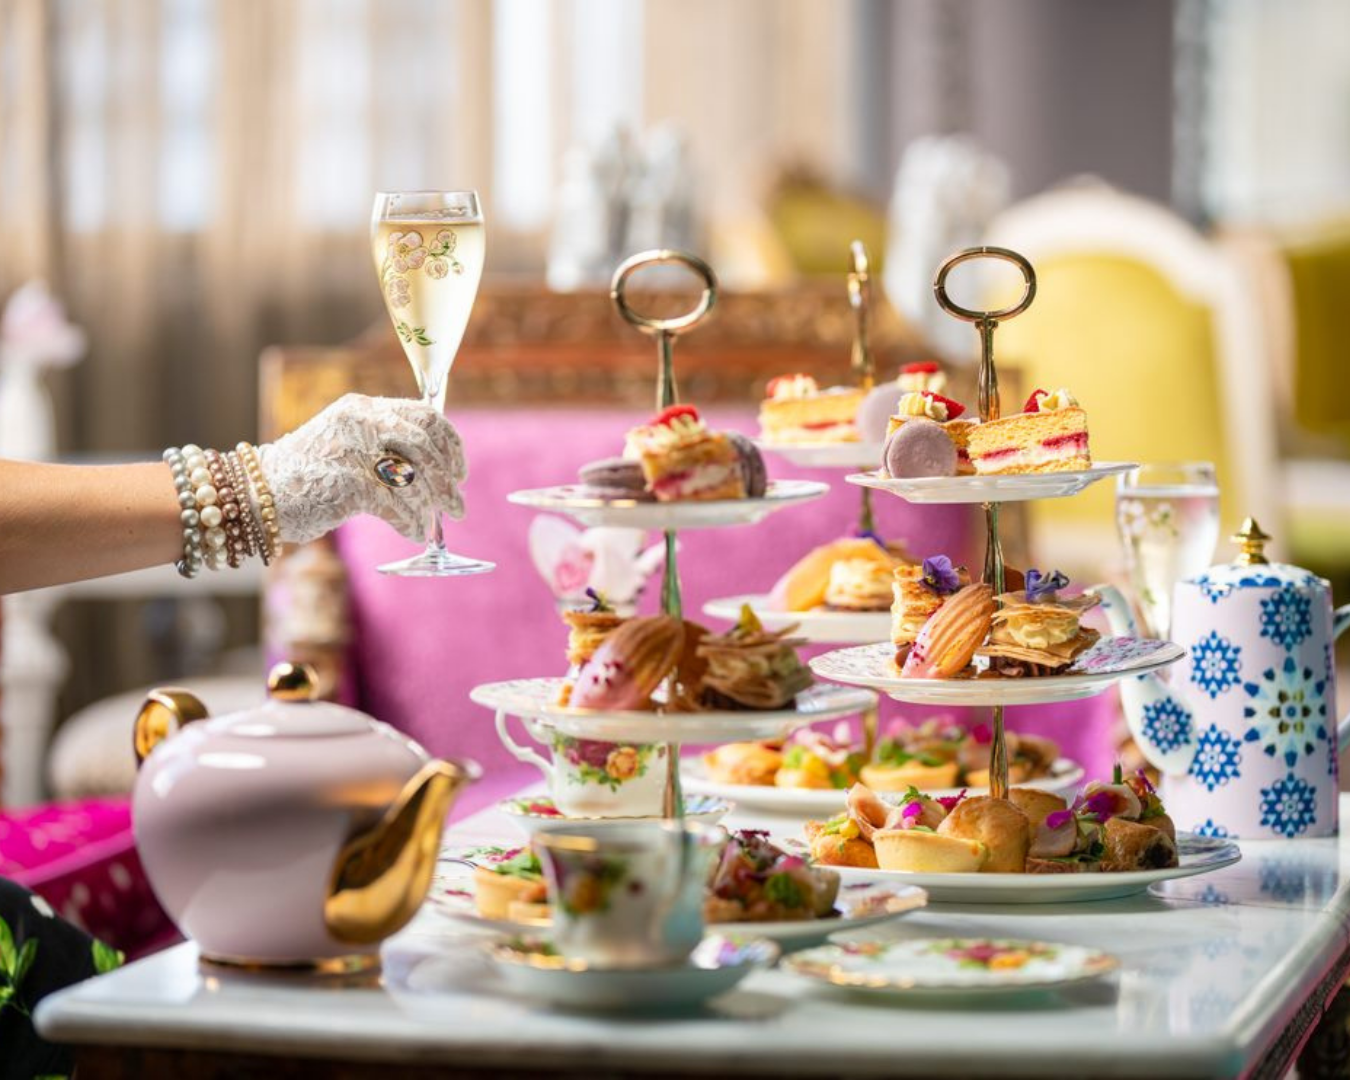 A lady holding a glass of bubbles next to a beautiful display of food and beverages at a high tea